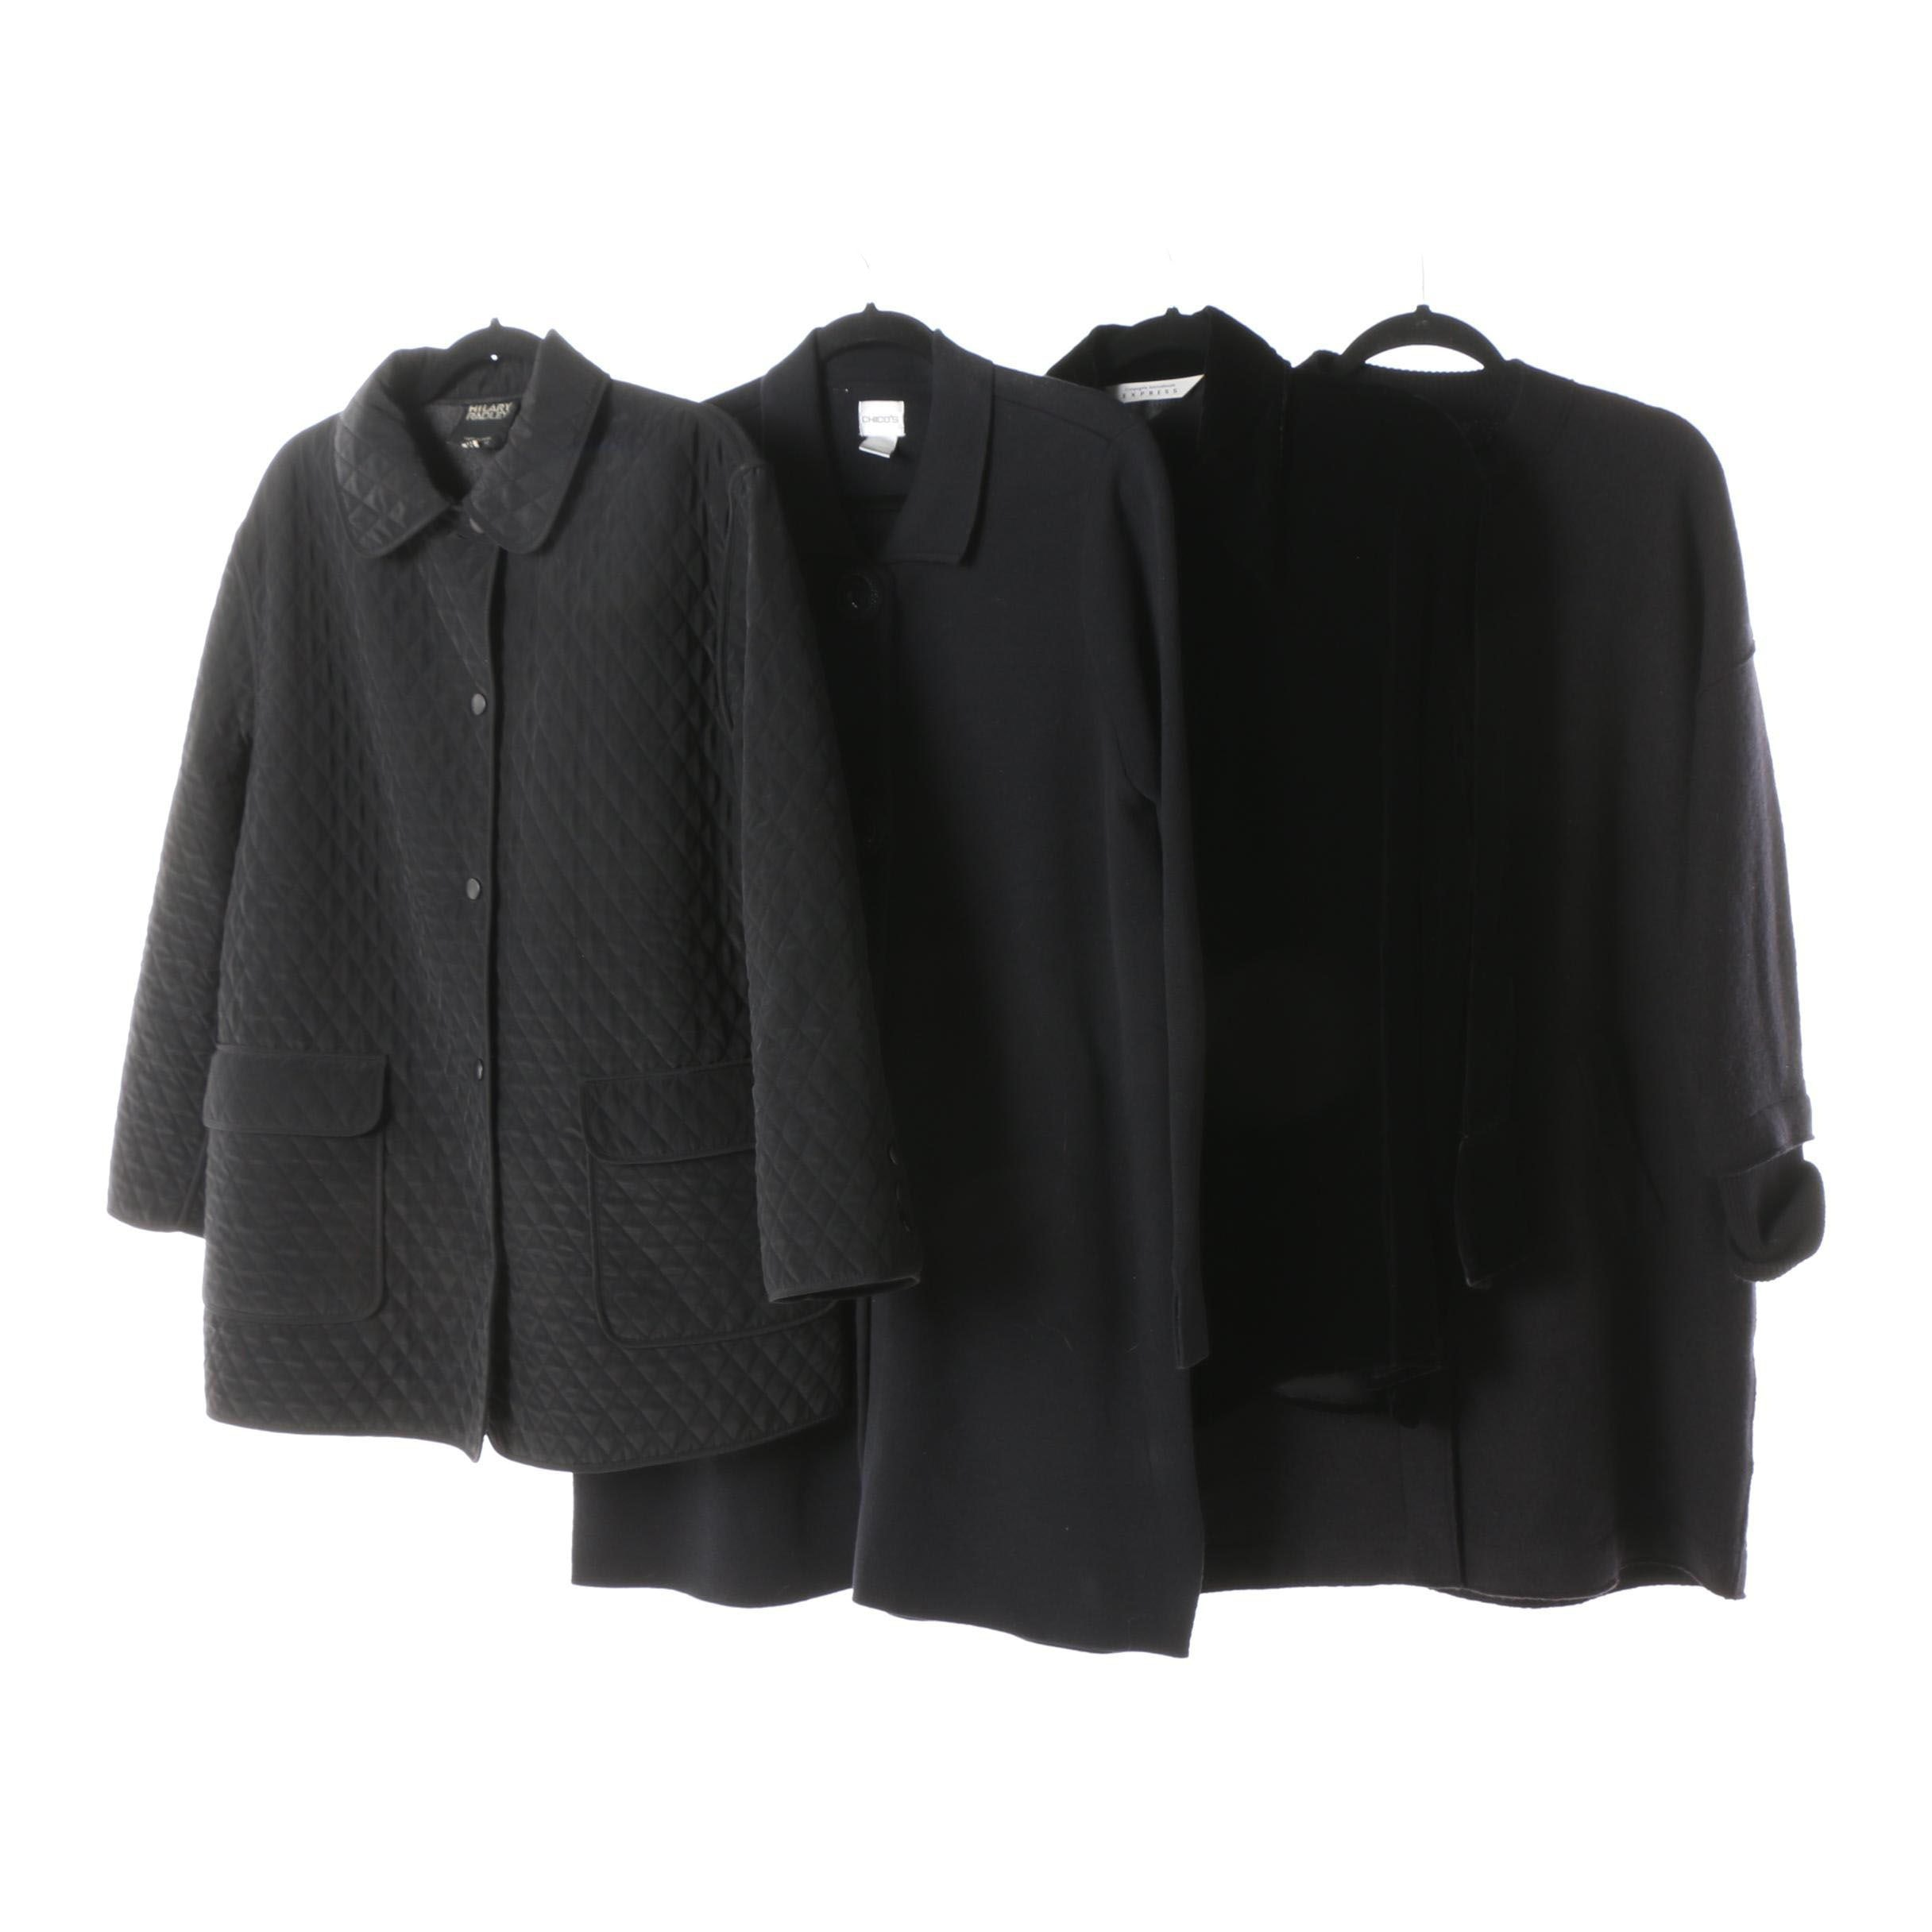 Women's Hilary Radley, Chico's, Express and Eileen Fisher Black Jackets